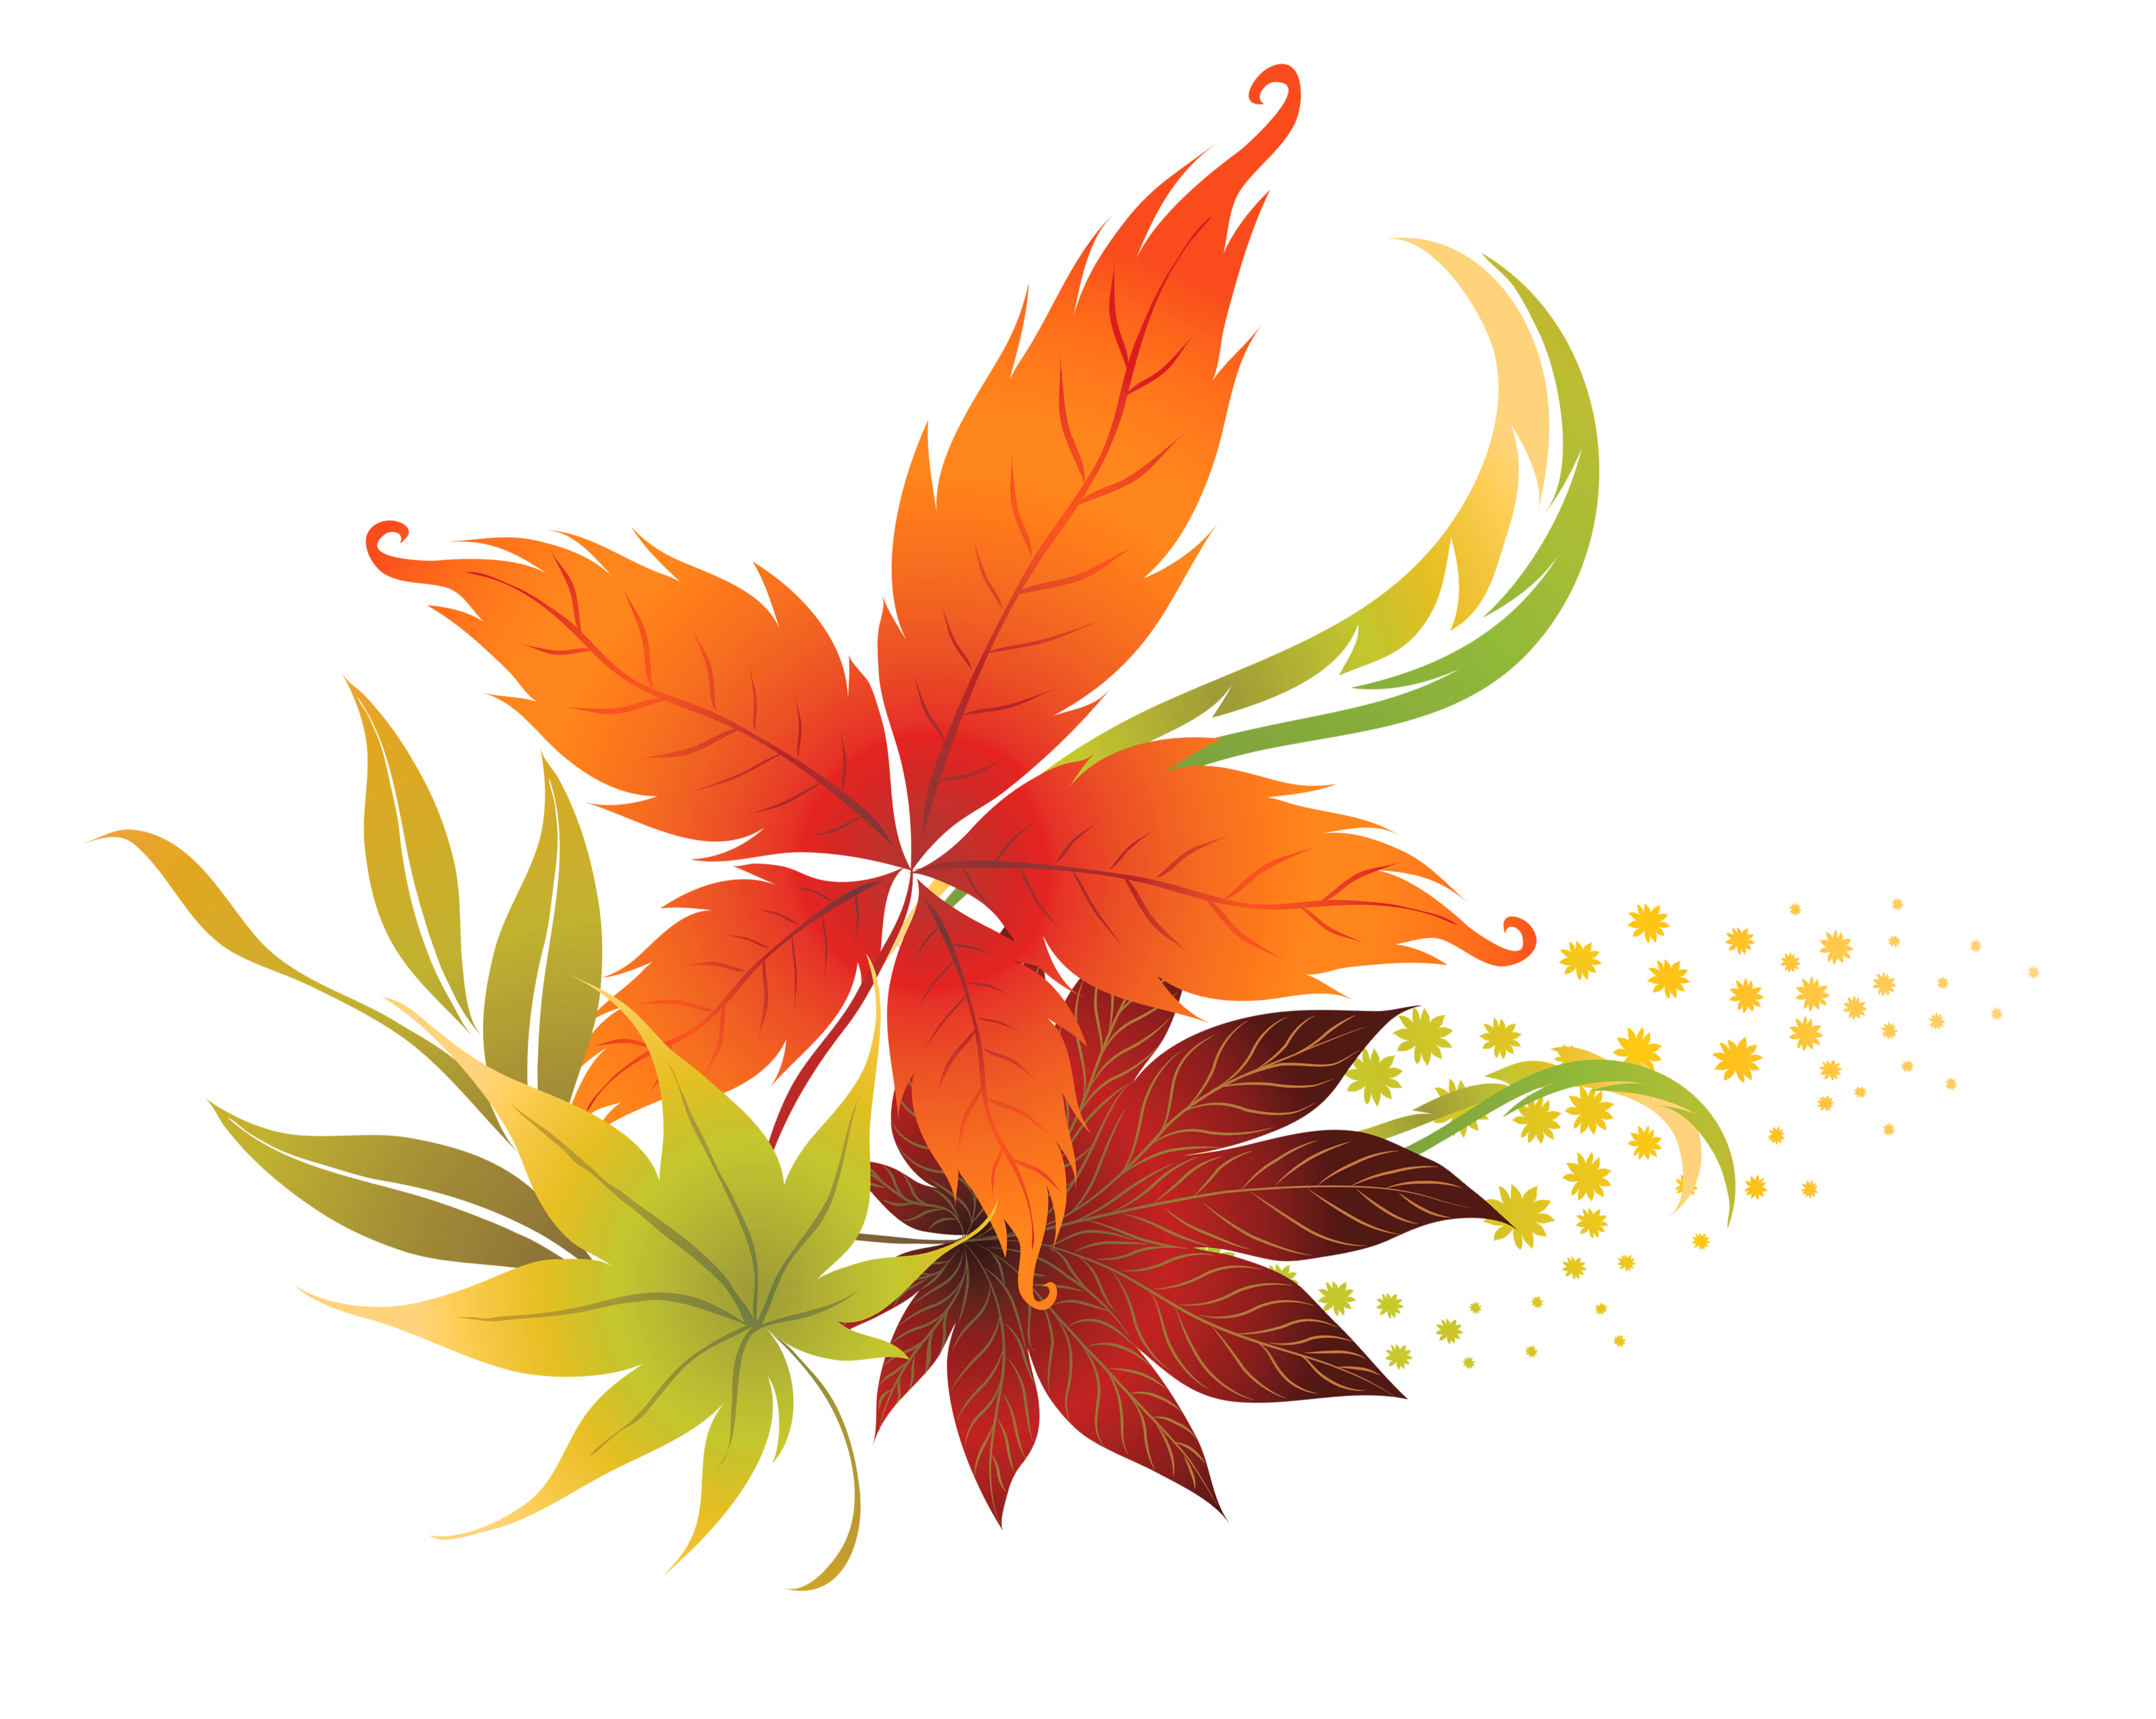 Fall clipart #1, Download drawings